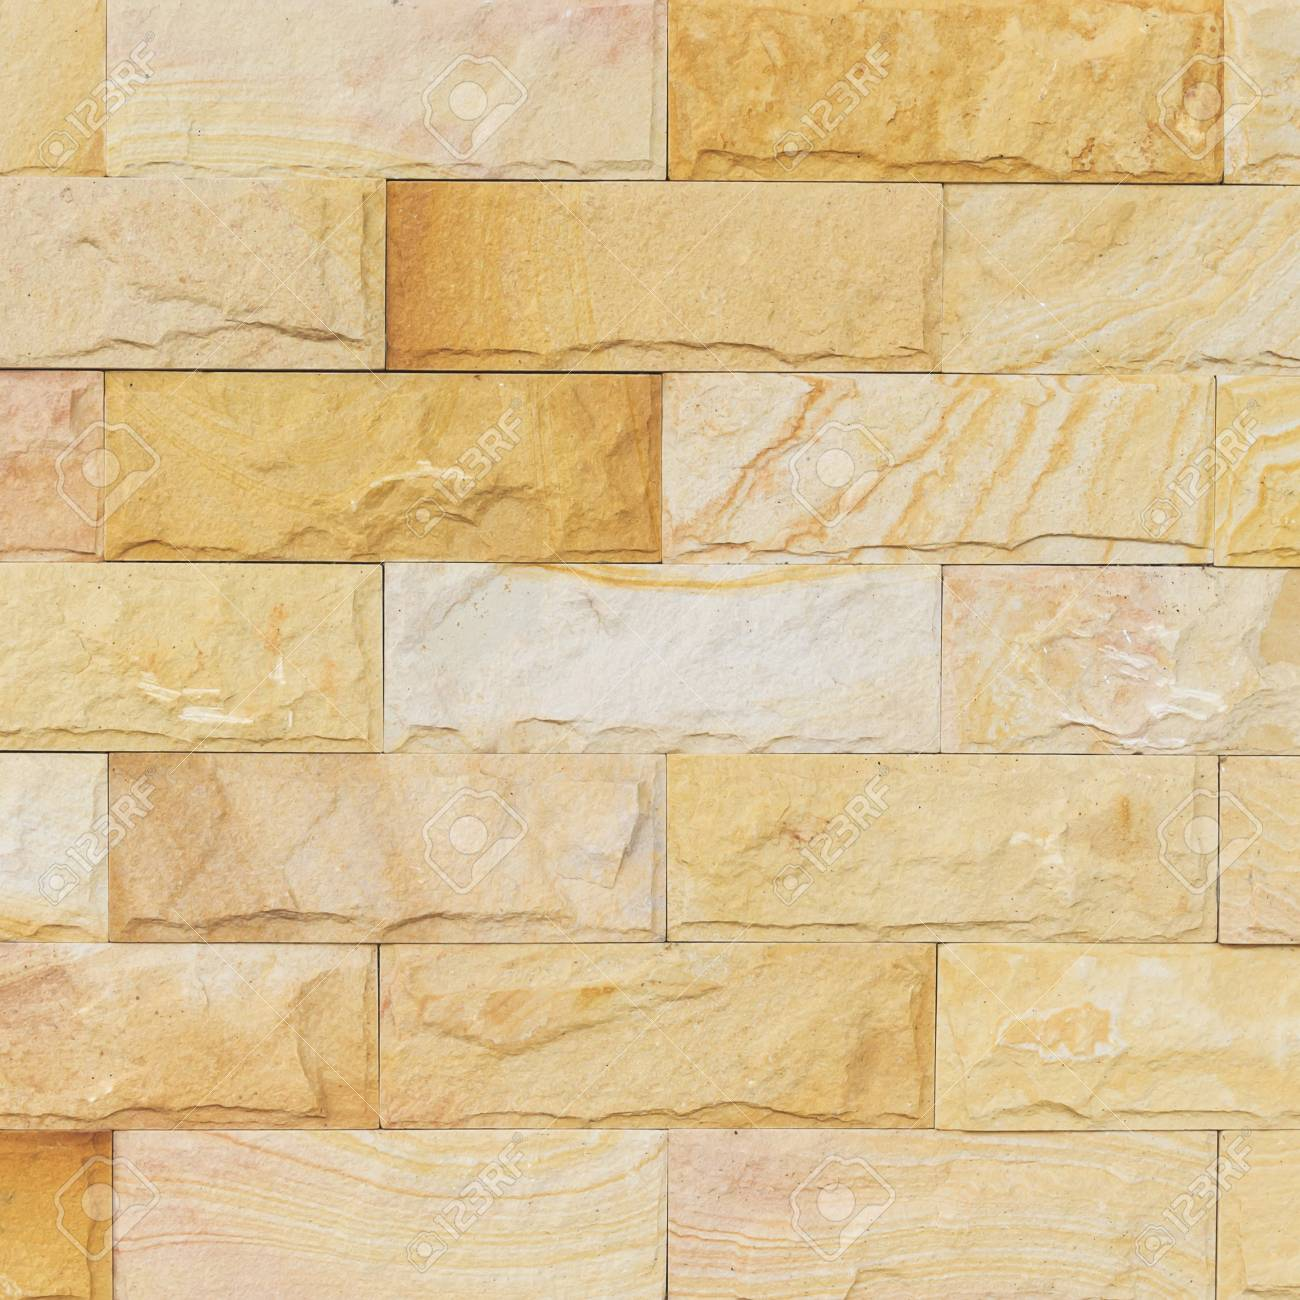 Sand Stone Wall Texture And Ackground Of Decorate Stock Photo ...